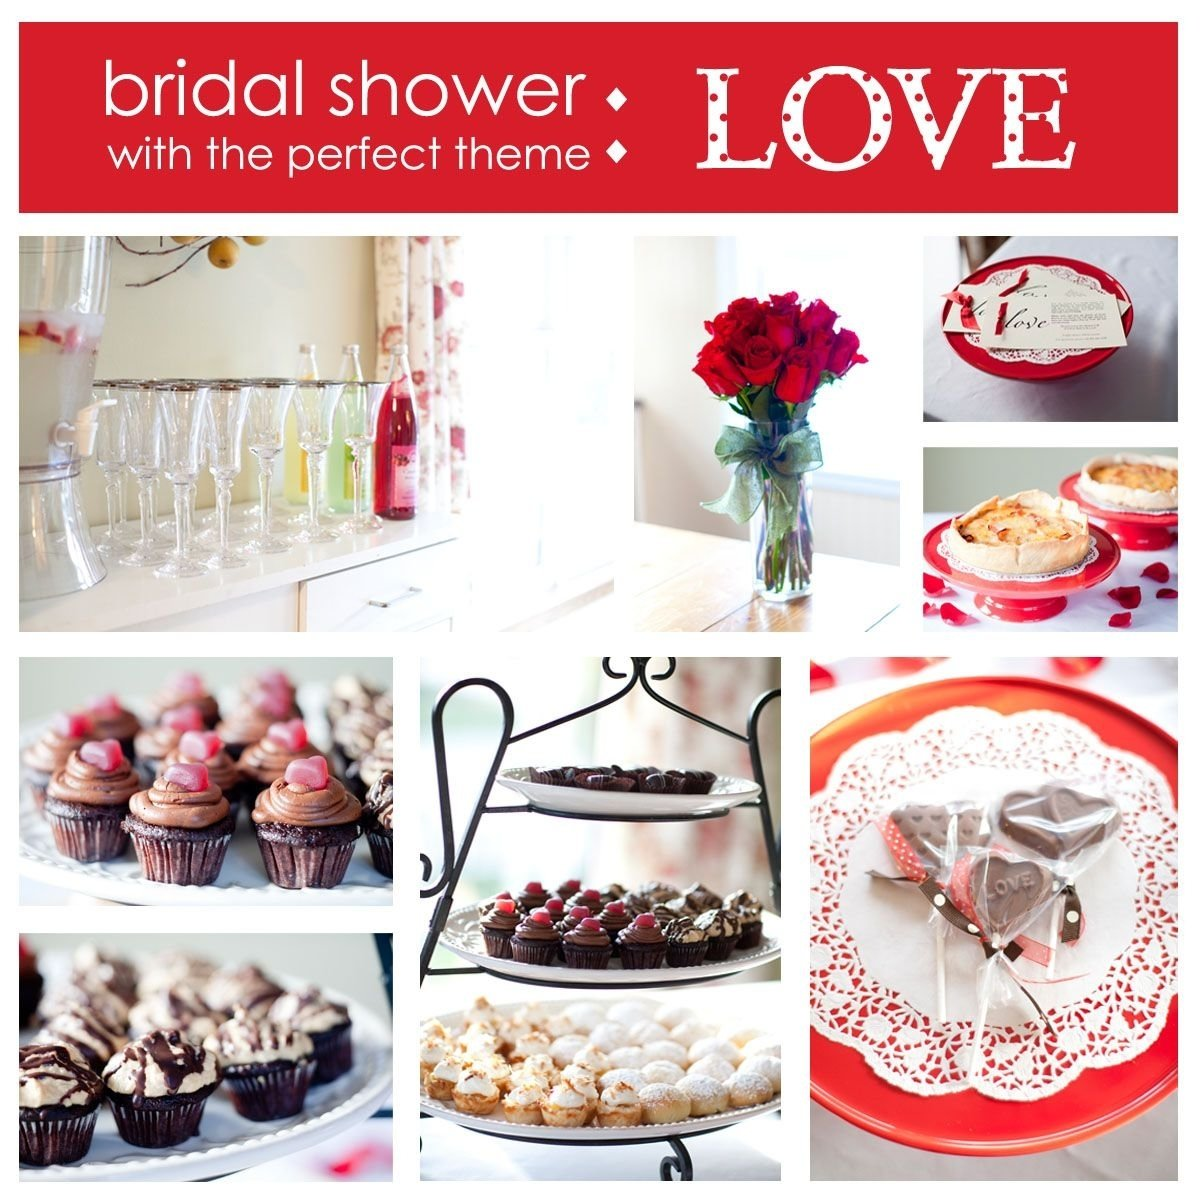 10 Stylish Bridal Shower Themes And Ideas love themed bridal shower ideas for valentines day shower ideas